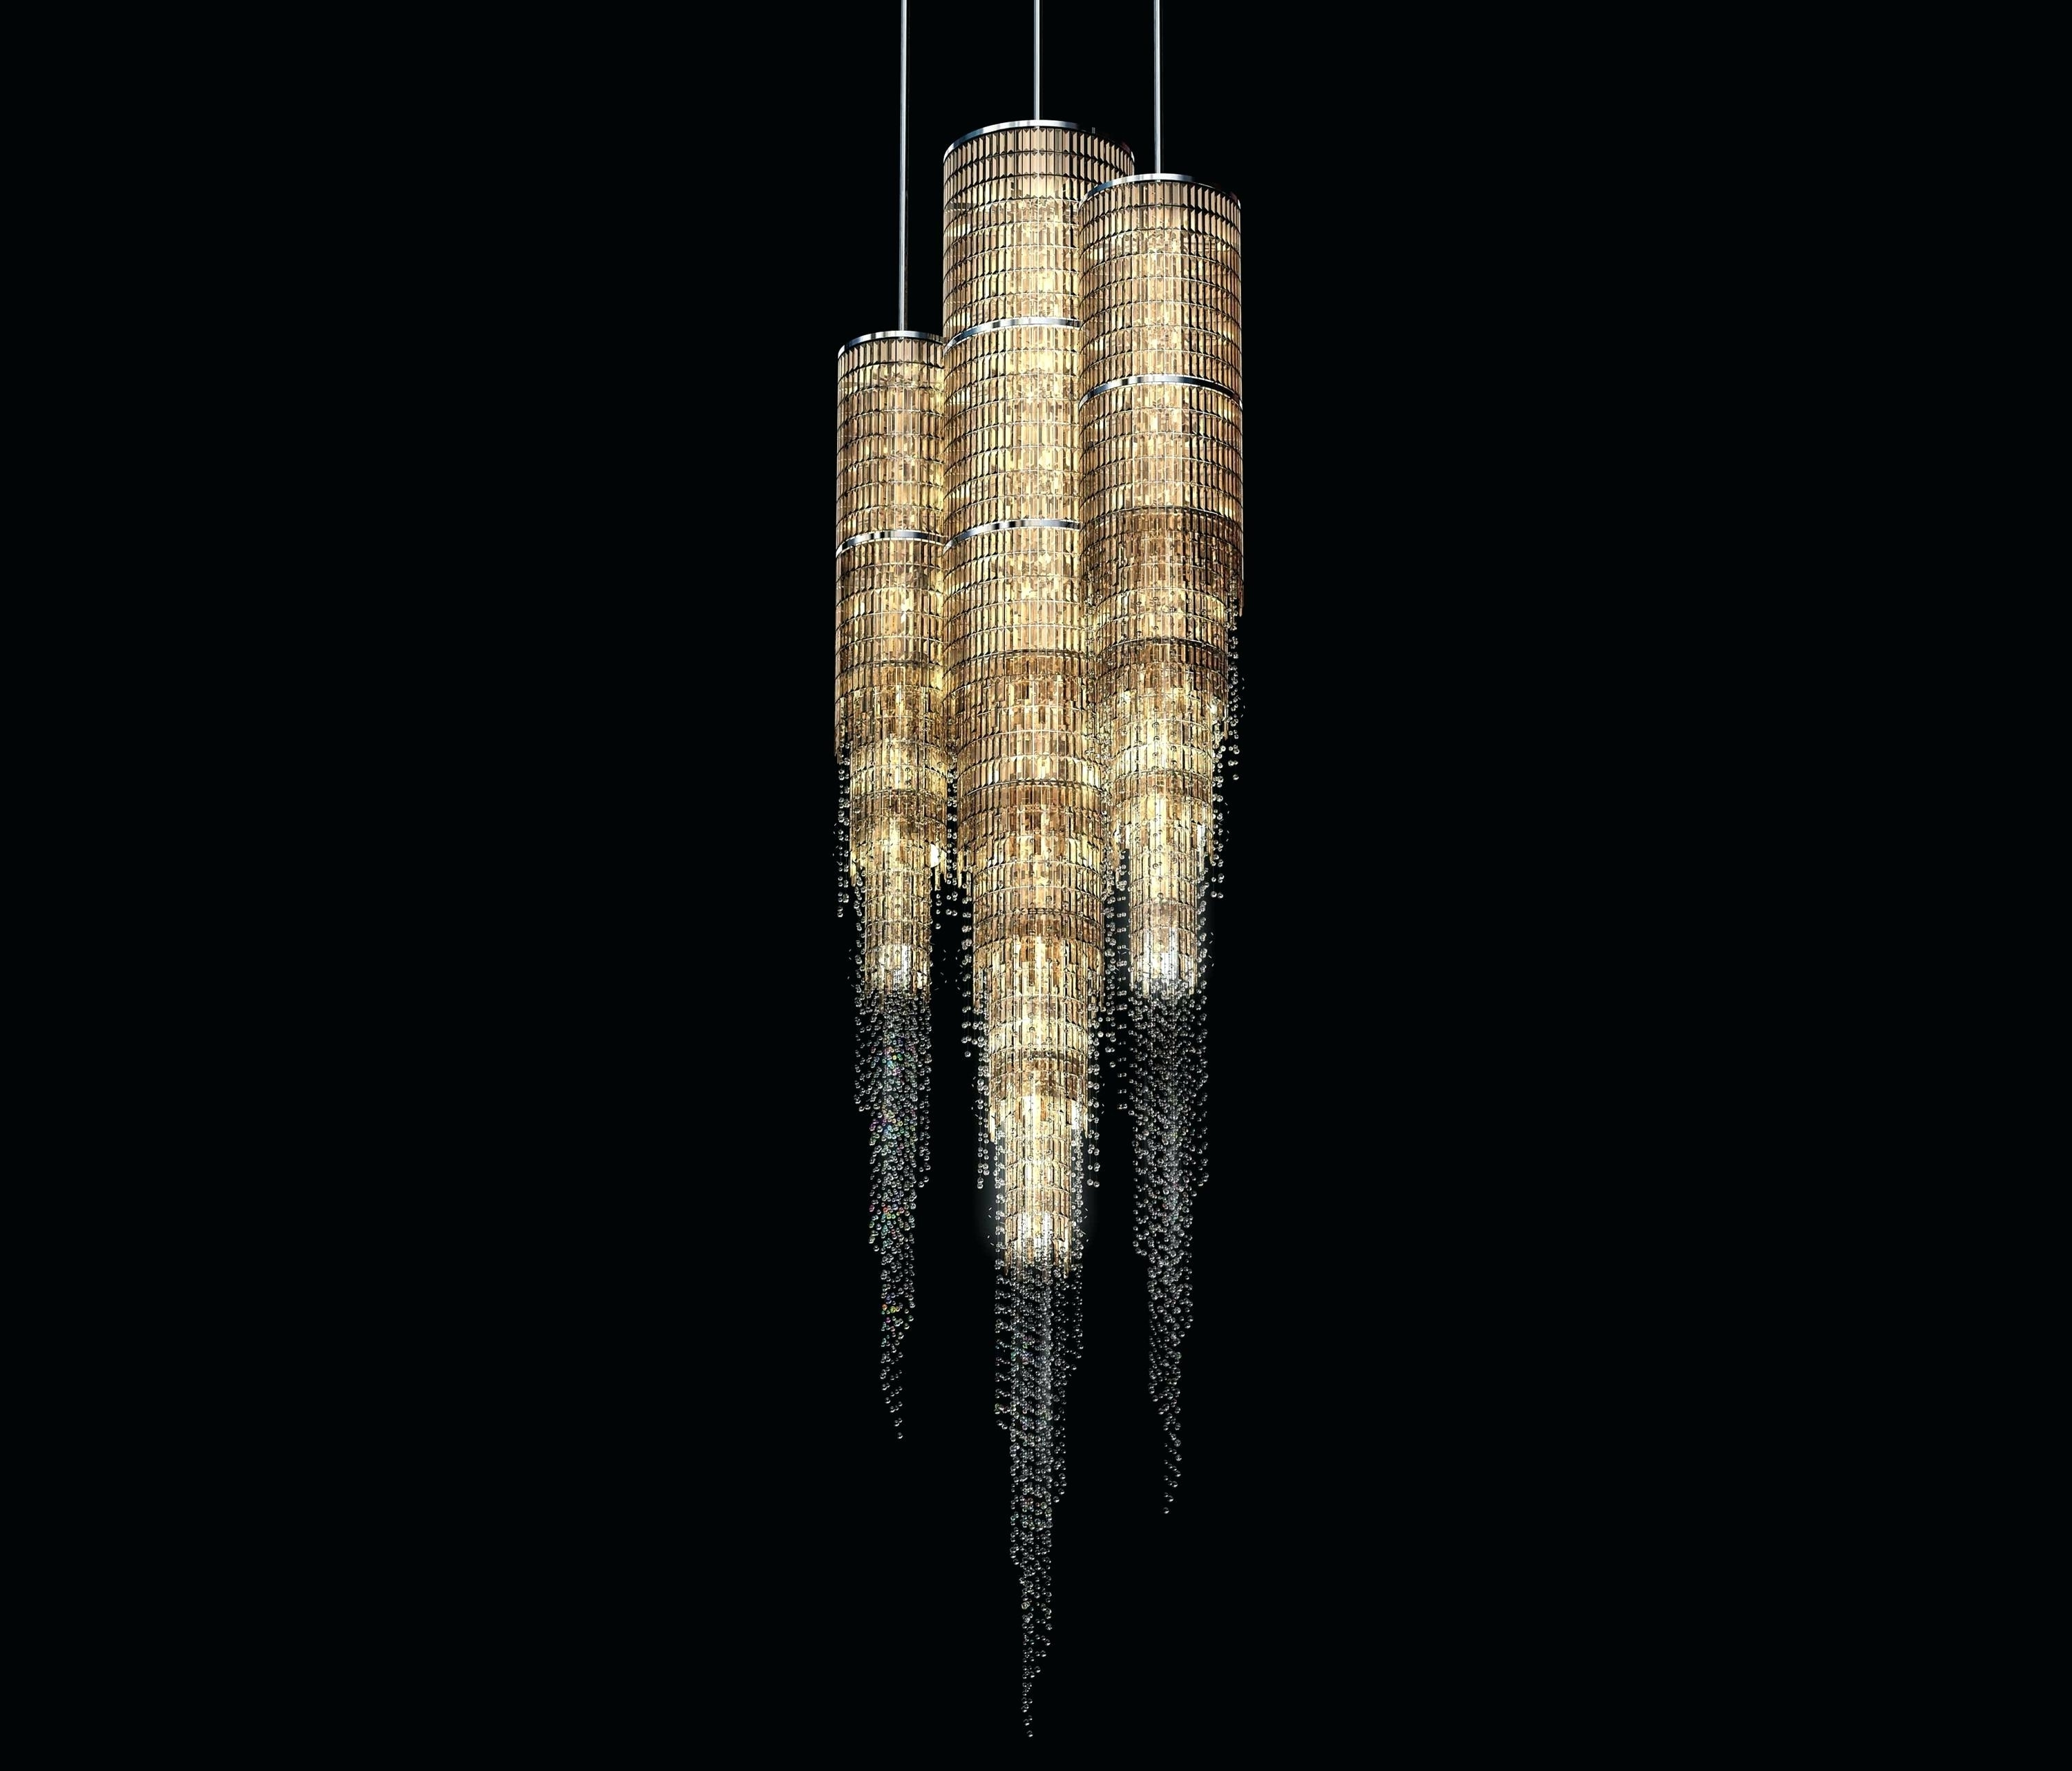 Most Current Unusual Chandeliers Throughout Unusual Chandeliers Glass Lights Uk Contemporary Lighting (View 12 of 20)